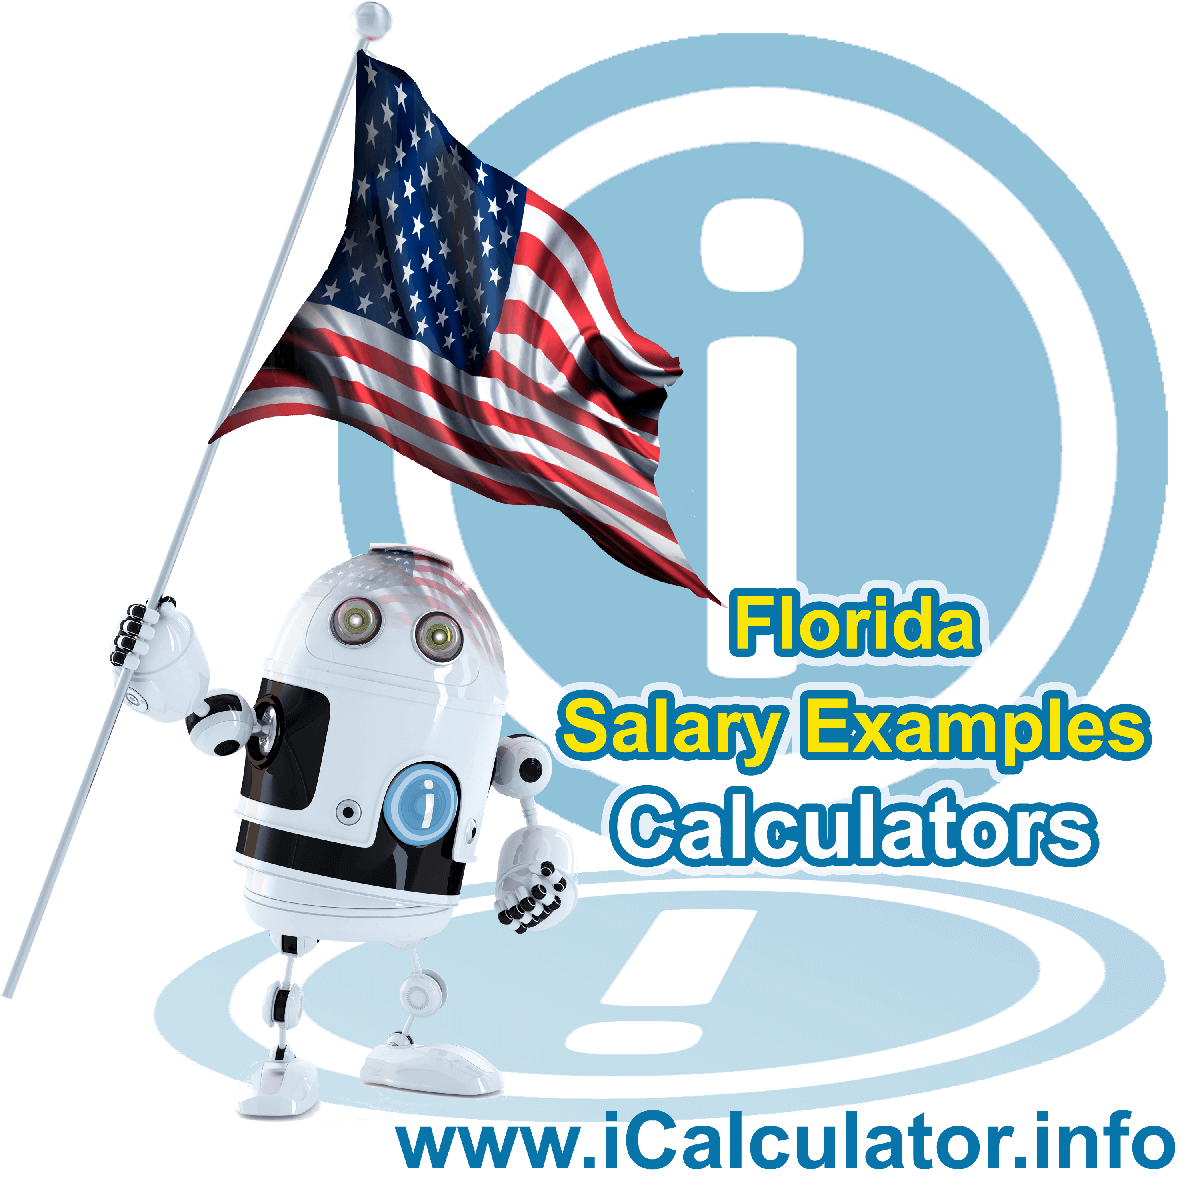 Florida Salary Example for $60,000.00 in 2020 | iCalculator | $60,000.00 salary example for employee and employer paying Florida State tincome taxes. Detailed salary after tax calculation including Florida State Tax, Federal State Tax, Medicare Deductions, Social Security, Capital Gains and other income tax and salary deductions complete with supporting Florida state tax tables